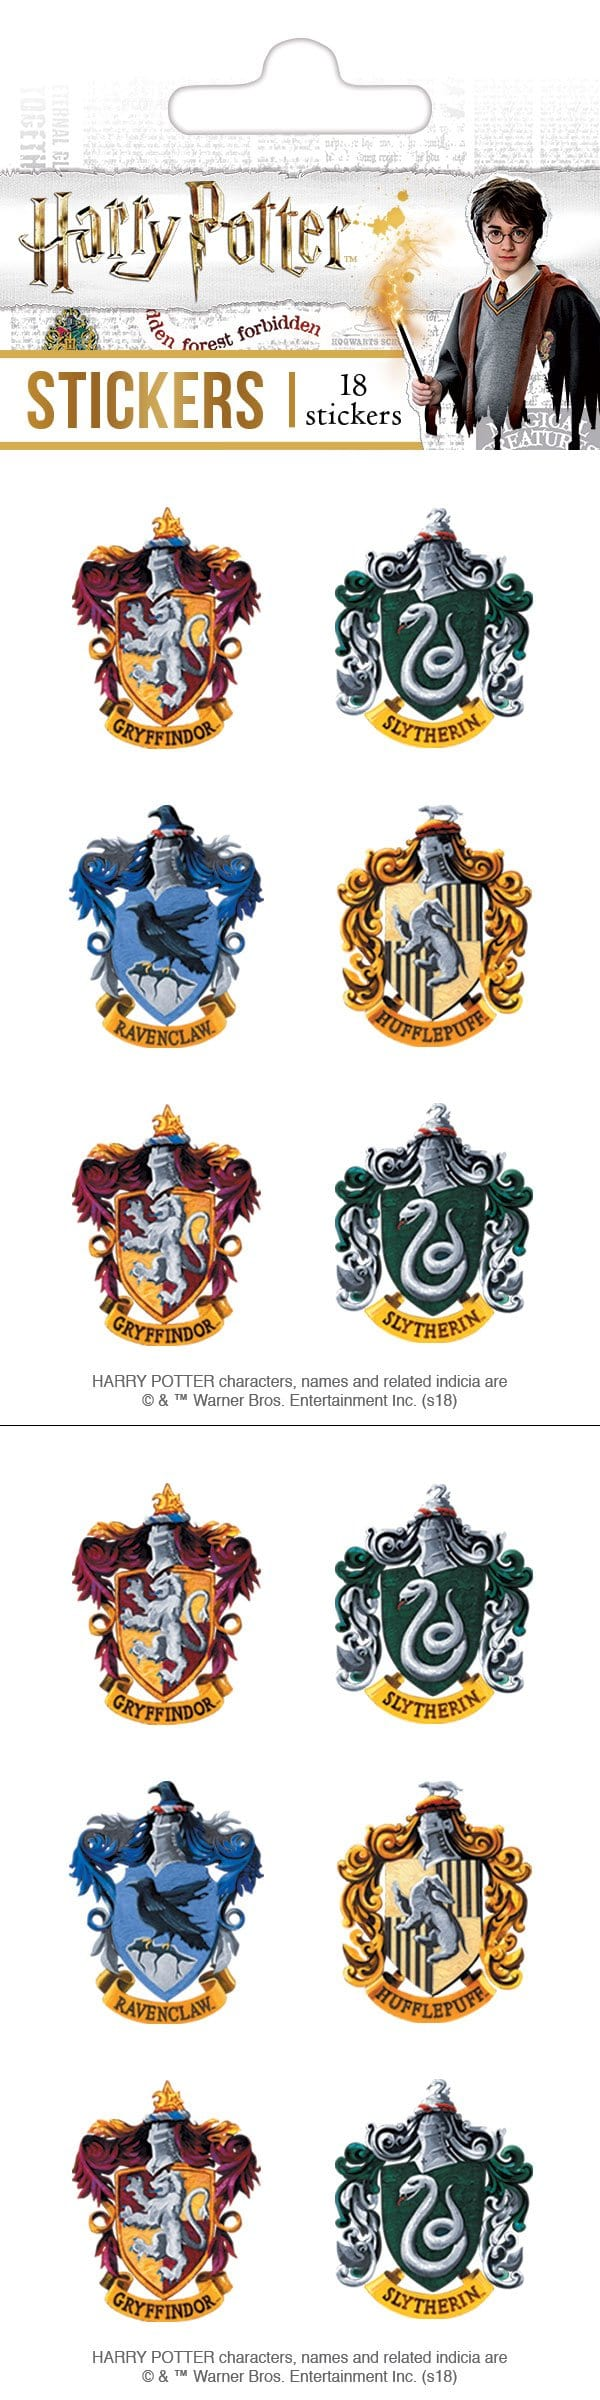 Harry Potter™ Crests Sticker Pack